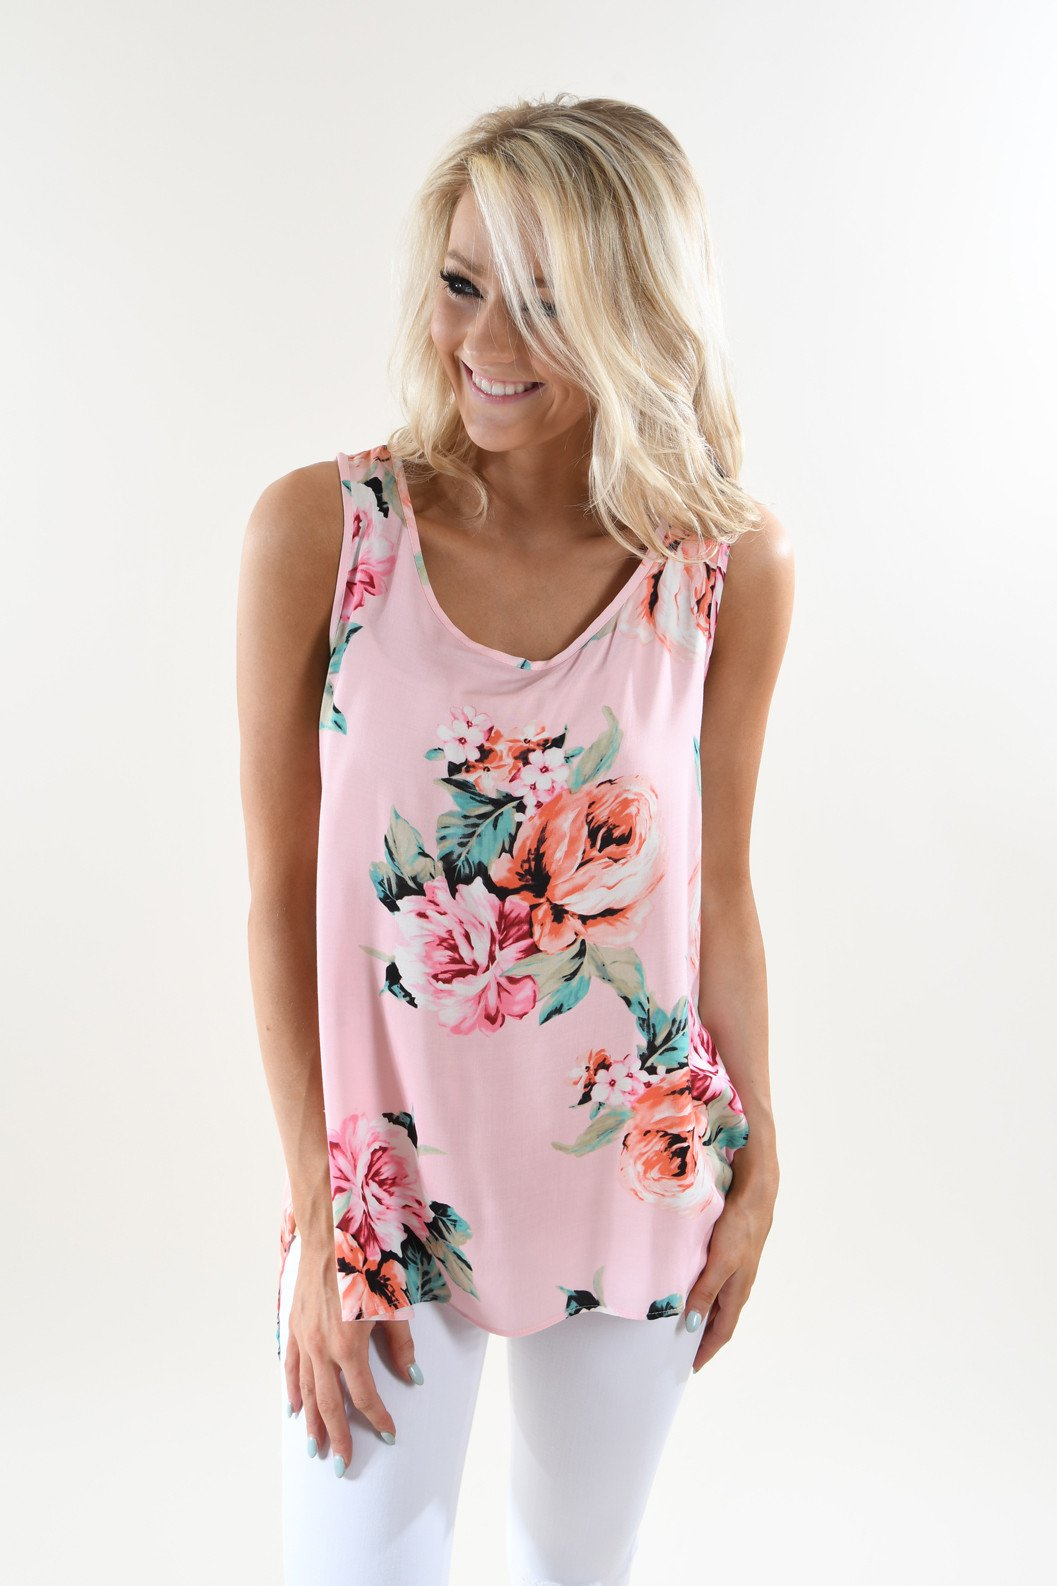 Brunch Ready Floral Tank Top